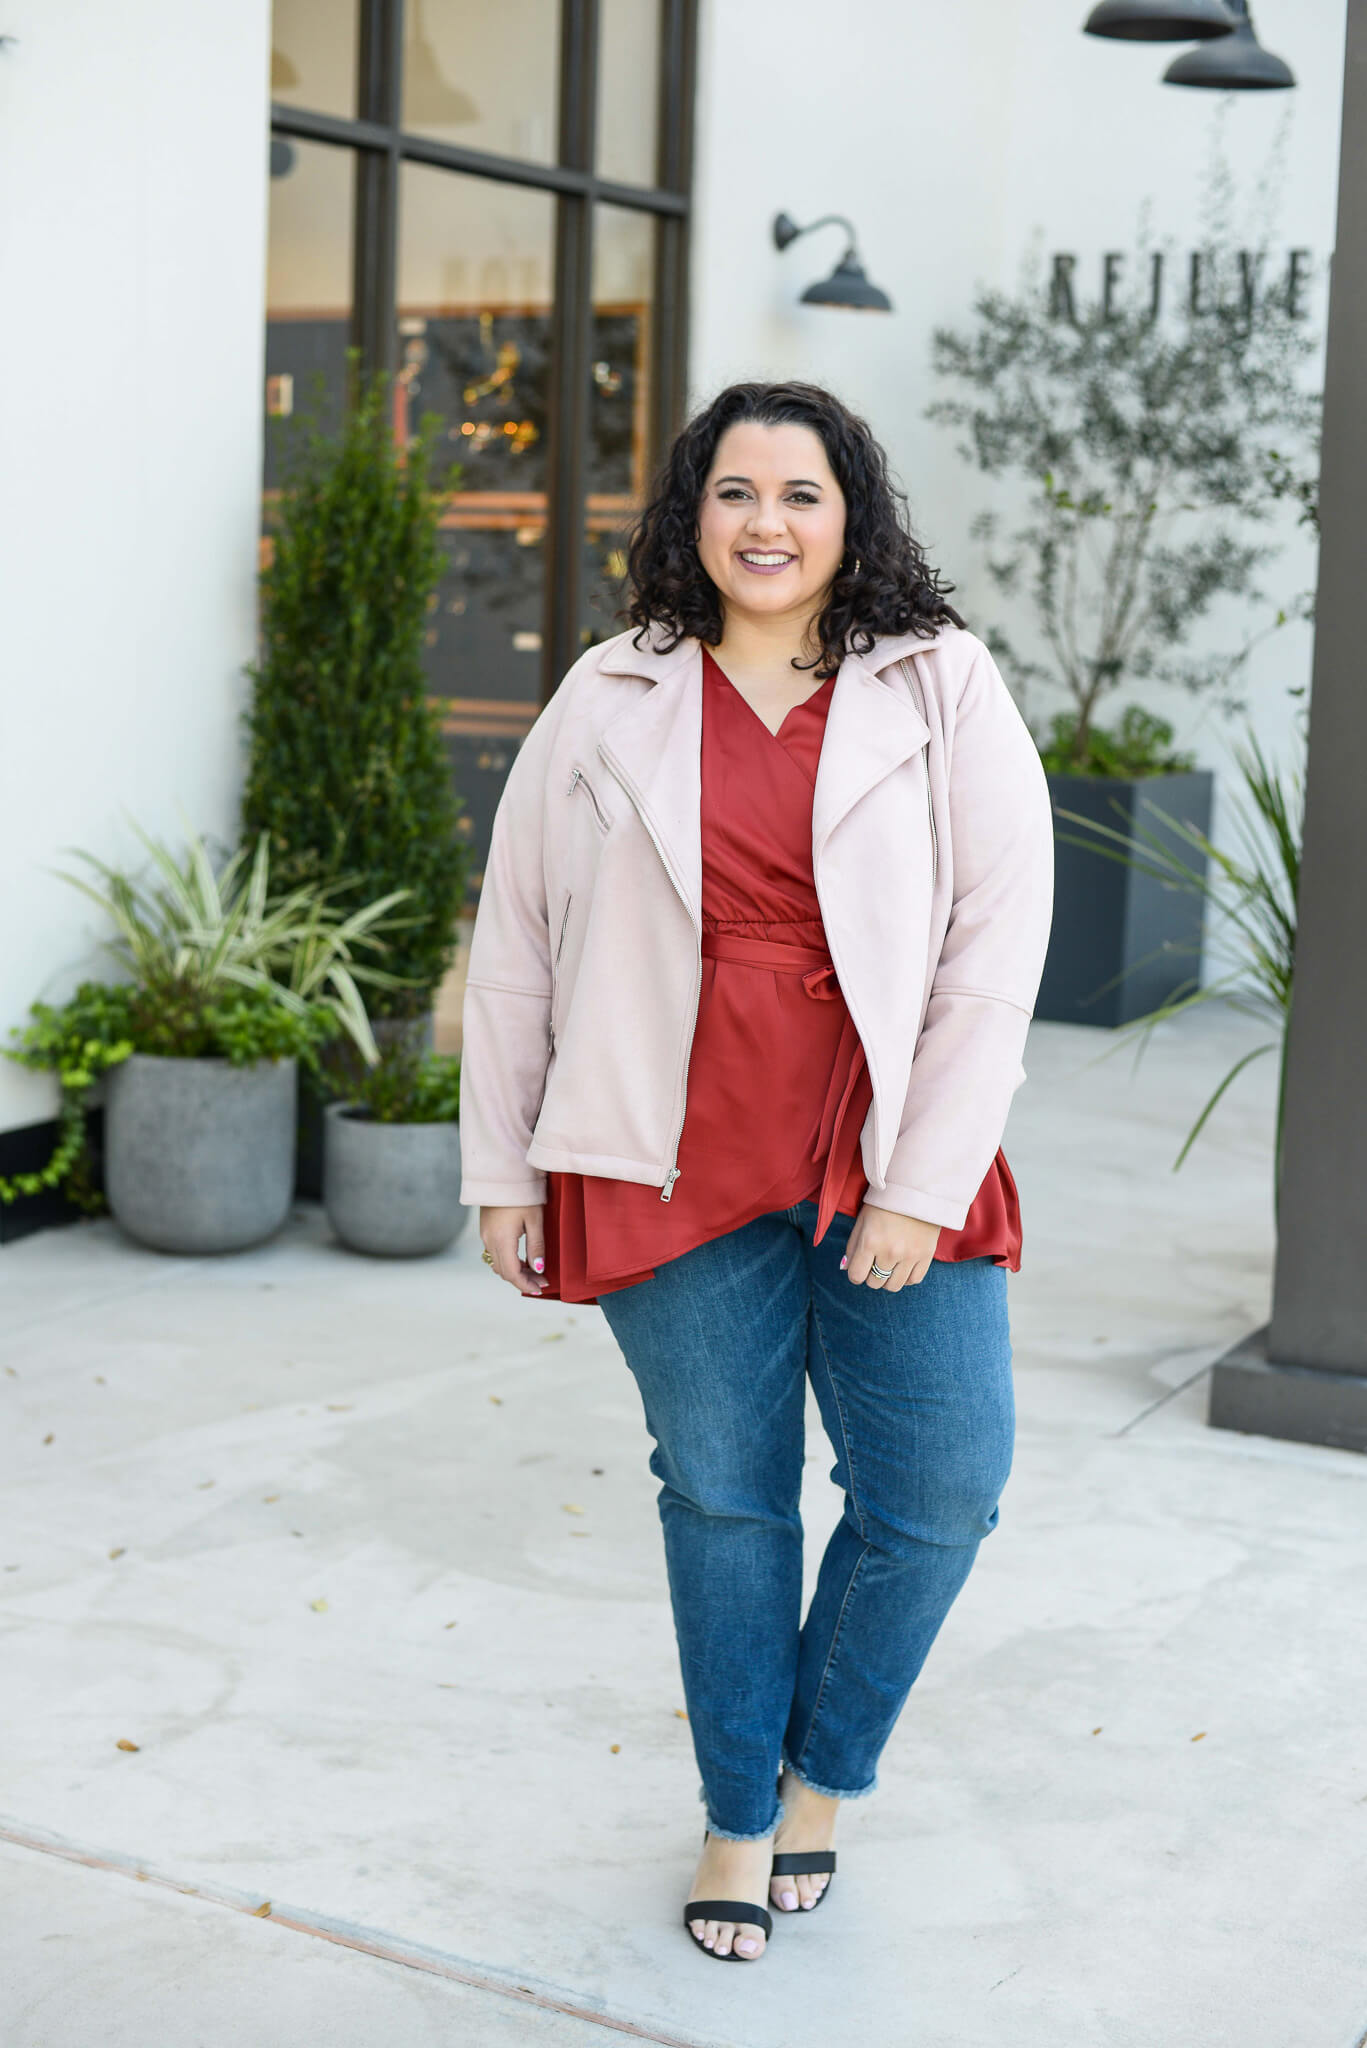 Lane Bryant plus size jeans are the perfect fit